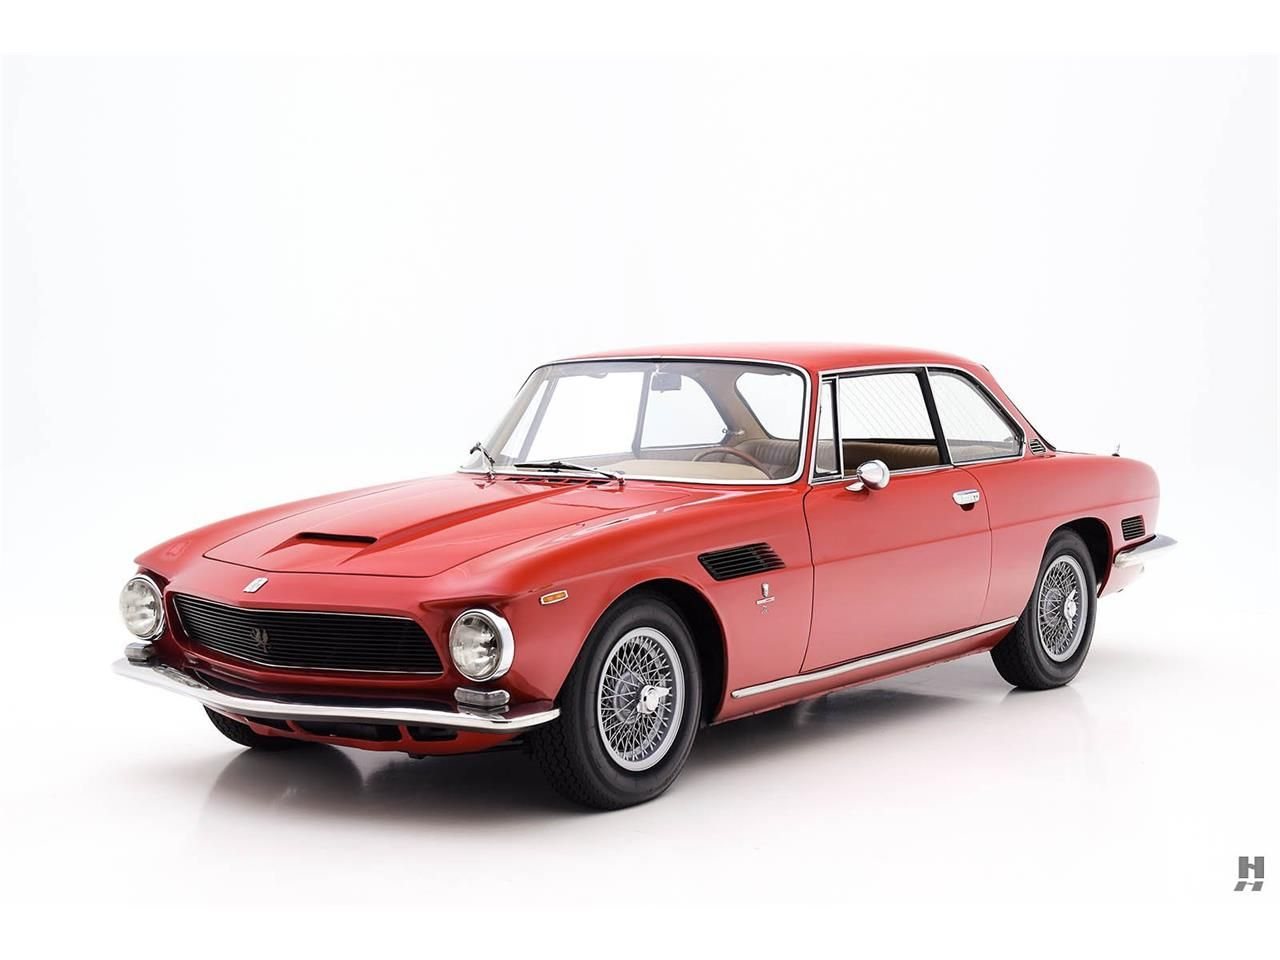 1969 Iso Rivolta IR 340 in Saint Louis, Missouri | classic cars ...